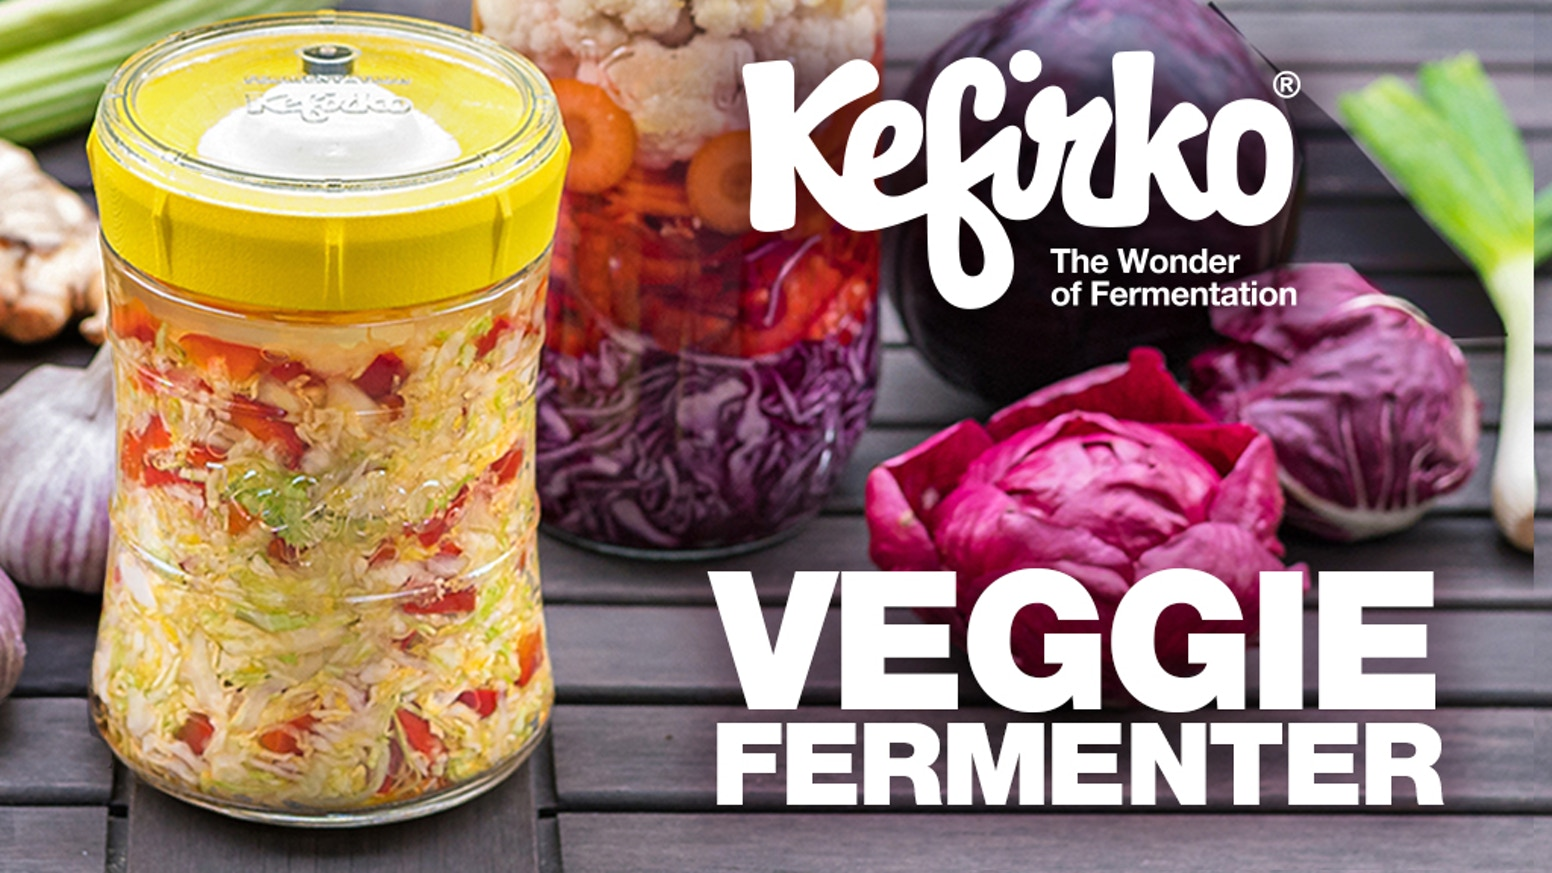 Ferment mixed veggies, sauerkraut, kimchi, or any other vegetable in your kitchen!